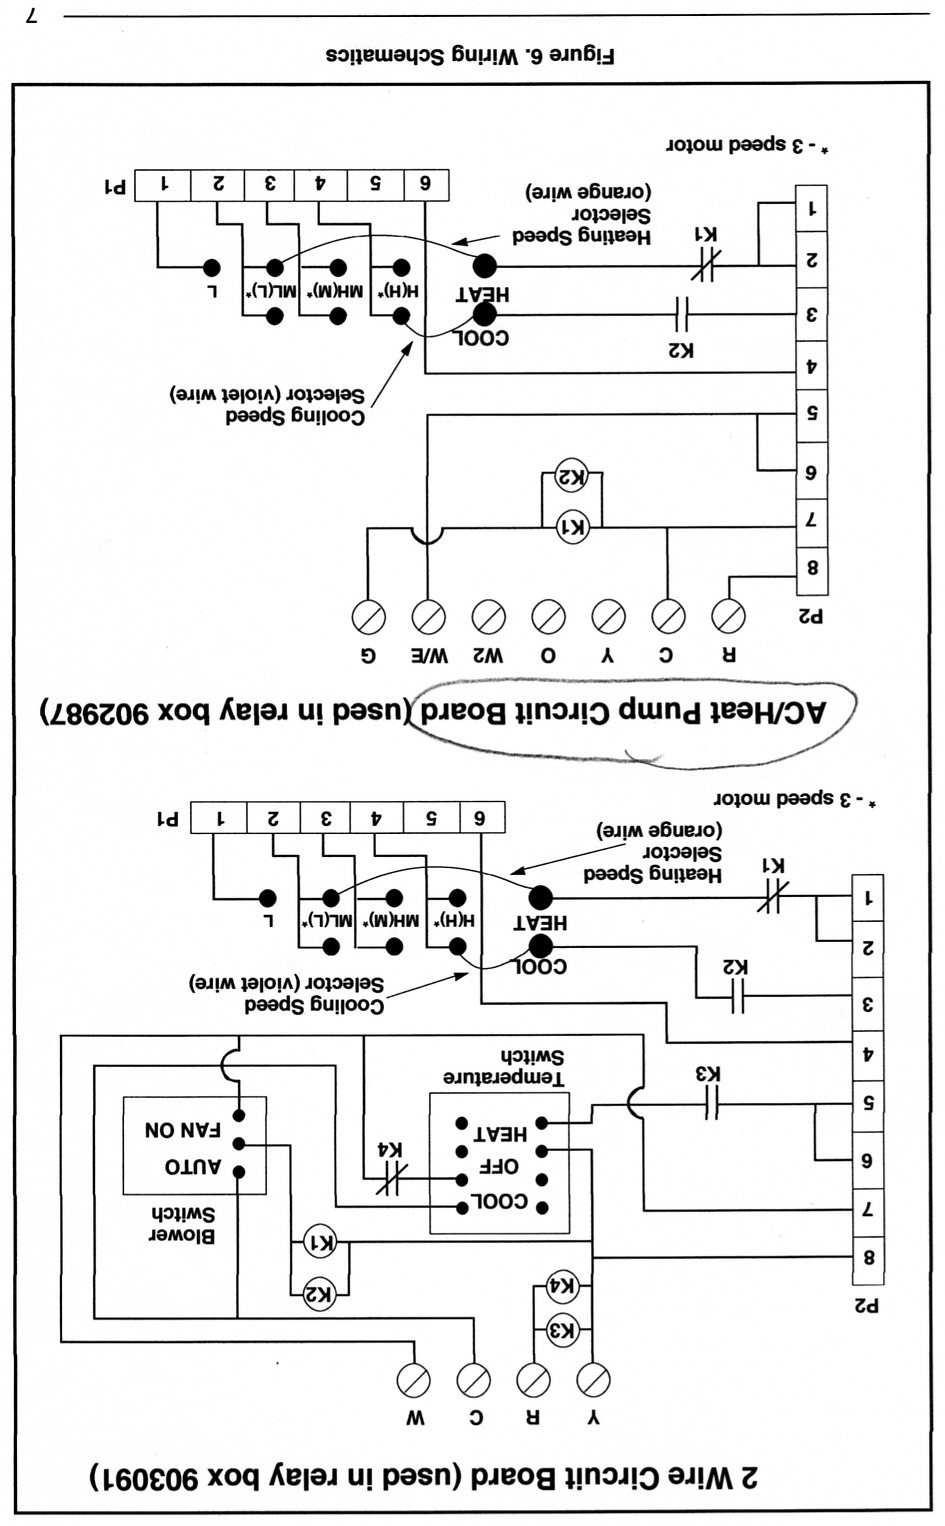 hight resolution of nordyne thermostat wiring diagram wiring diagrams lol nordyne 903992 thermostat wiring diagram nordyne heat pump wiring diagram thermostat